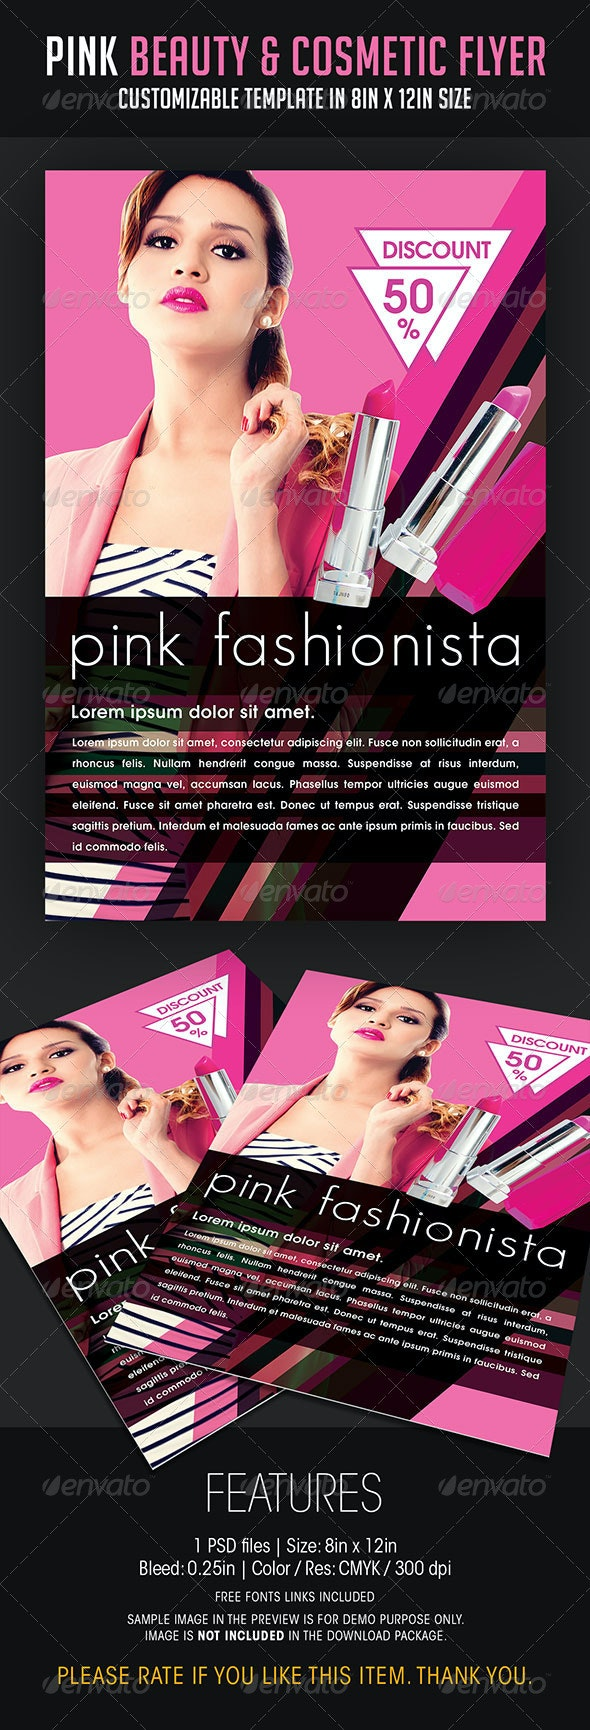 Pink Beauty and Cosmetic Flyer - Flyers Print Templates